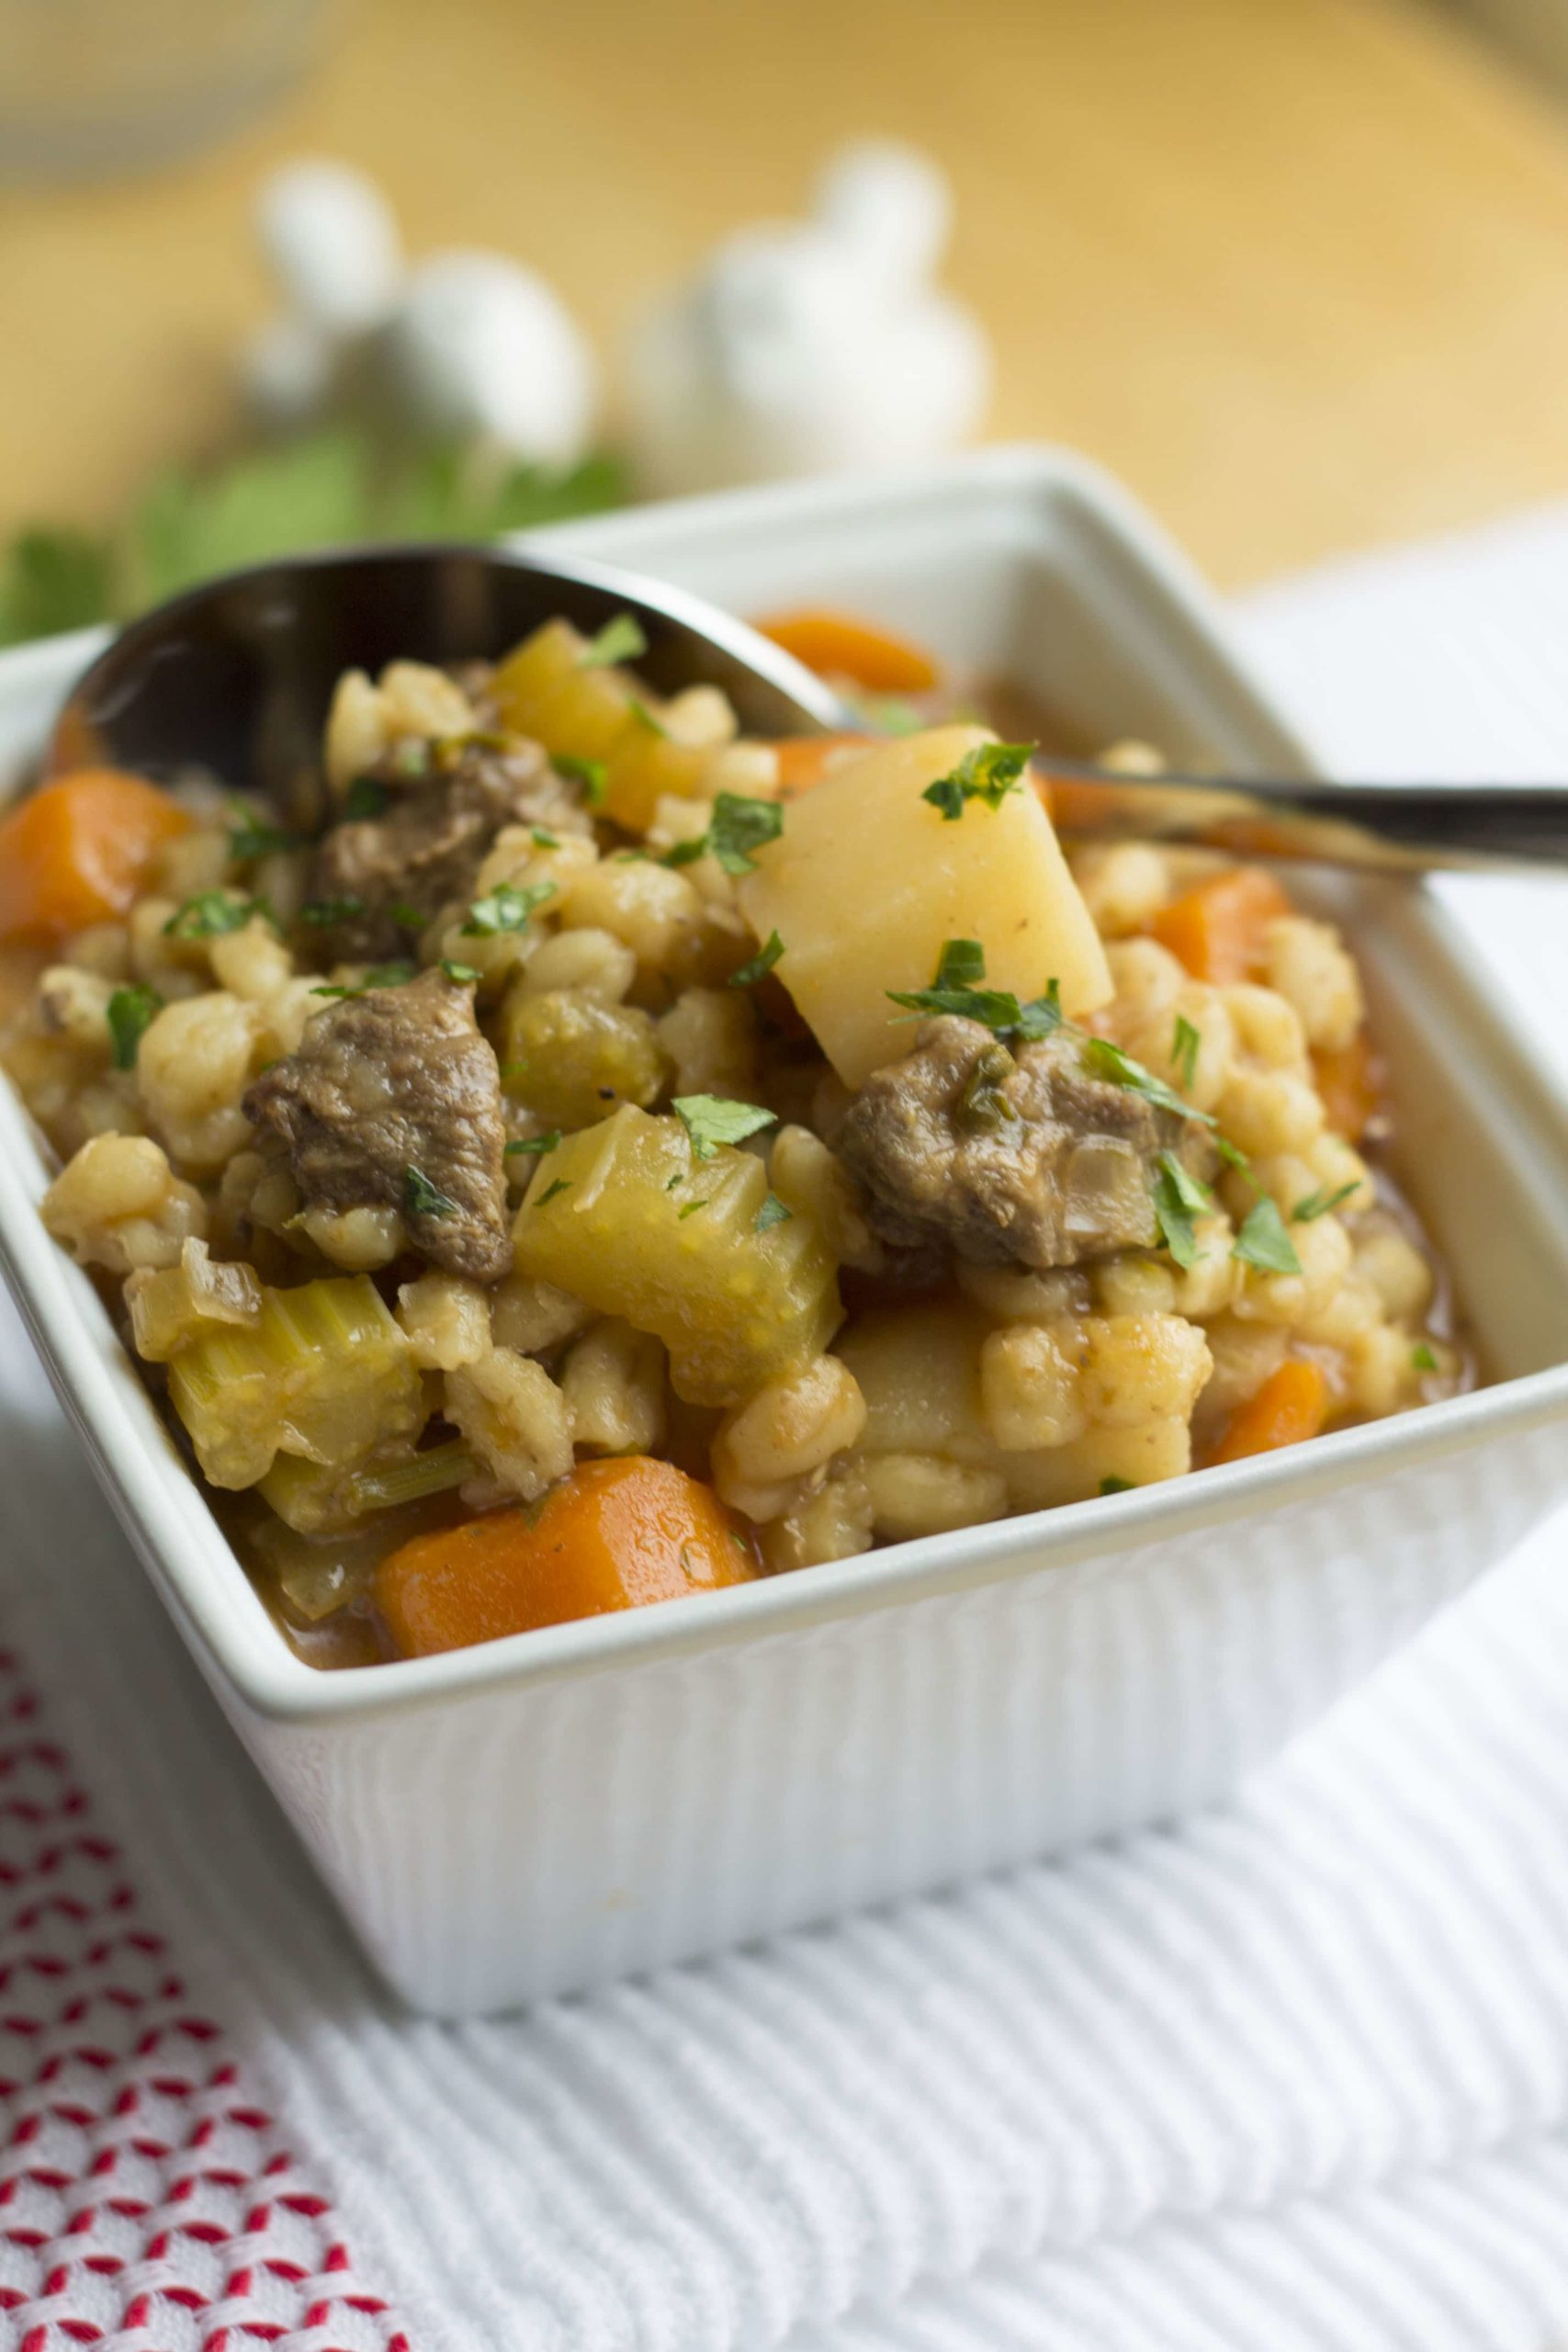 Beef & Barley Soup in a square bowl with a spoon in it